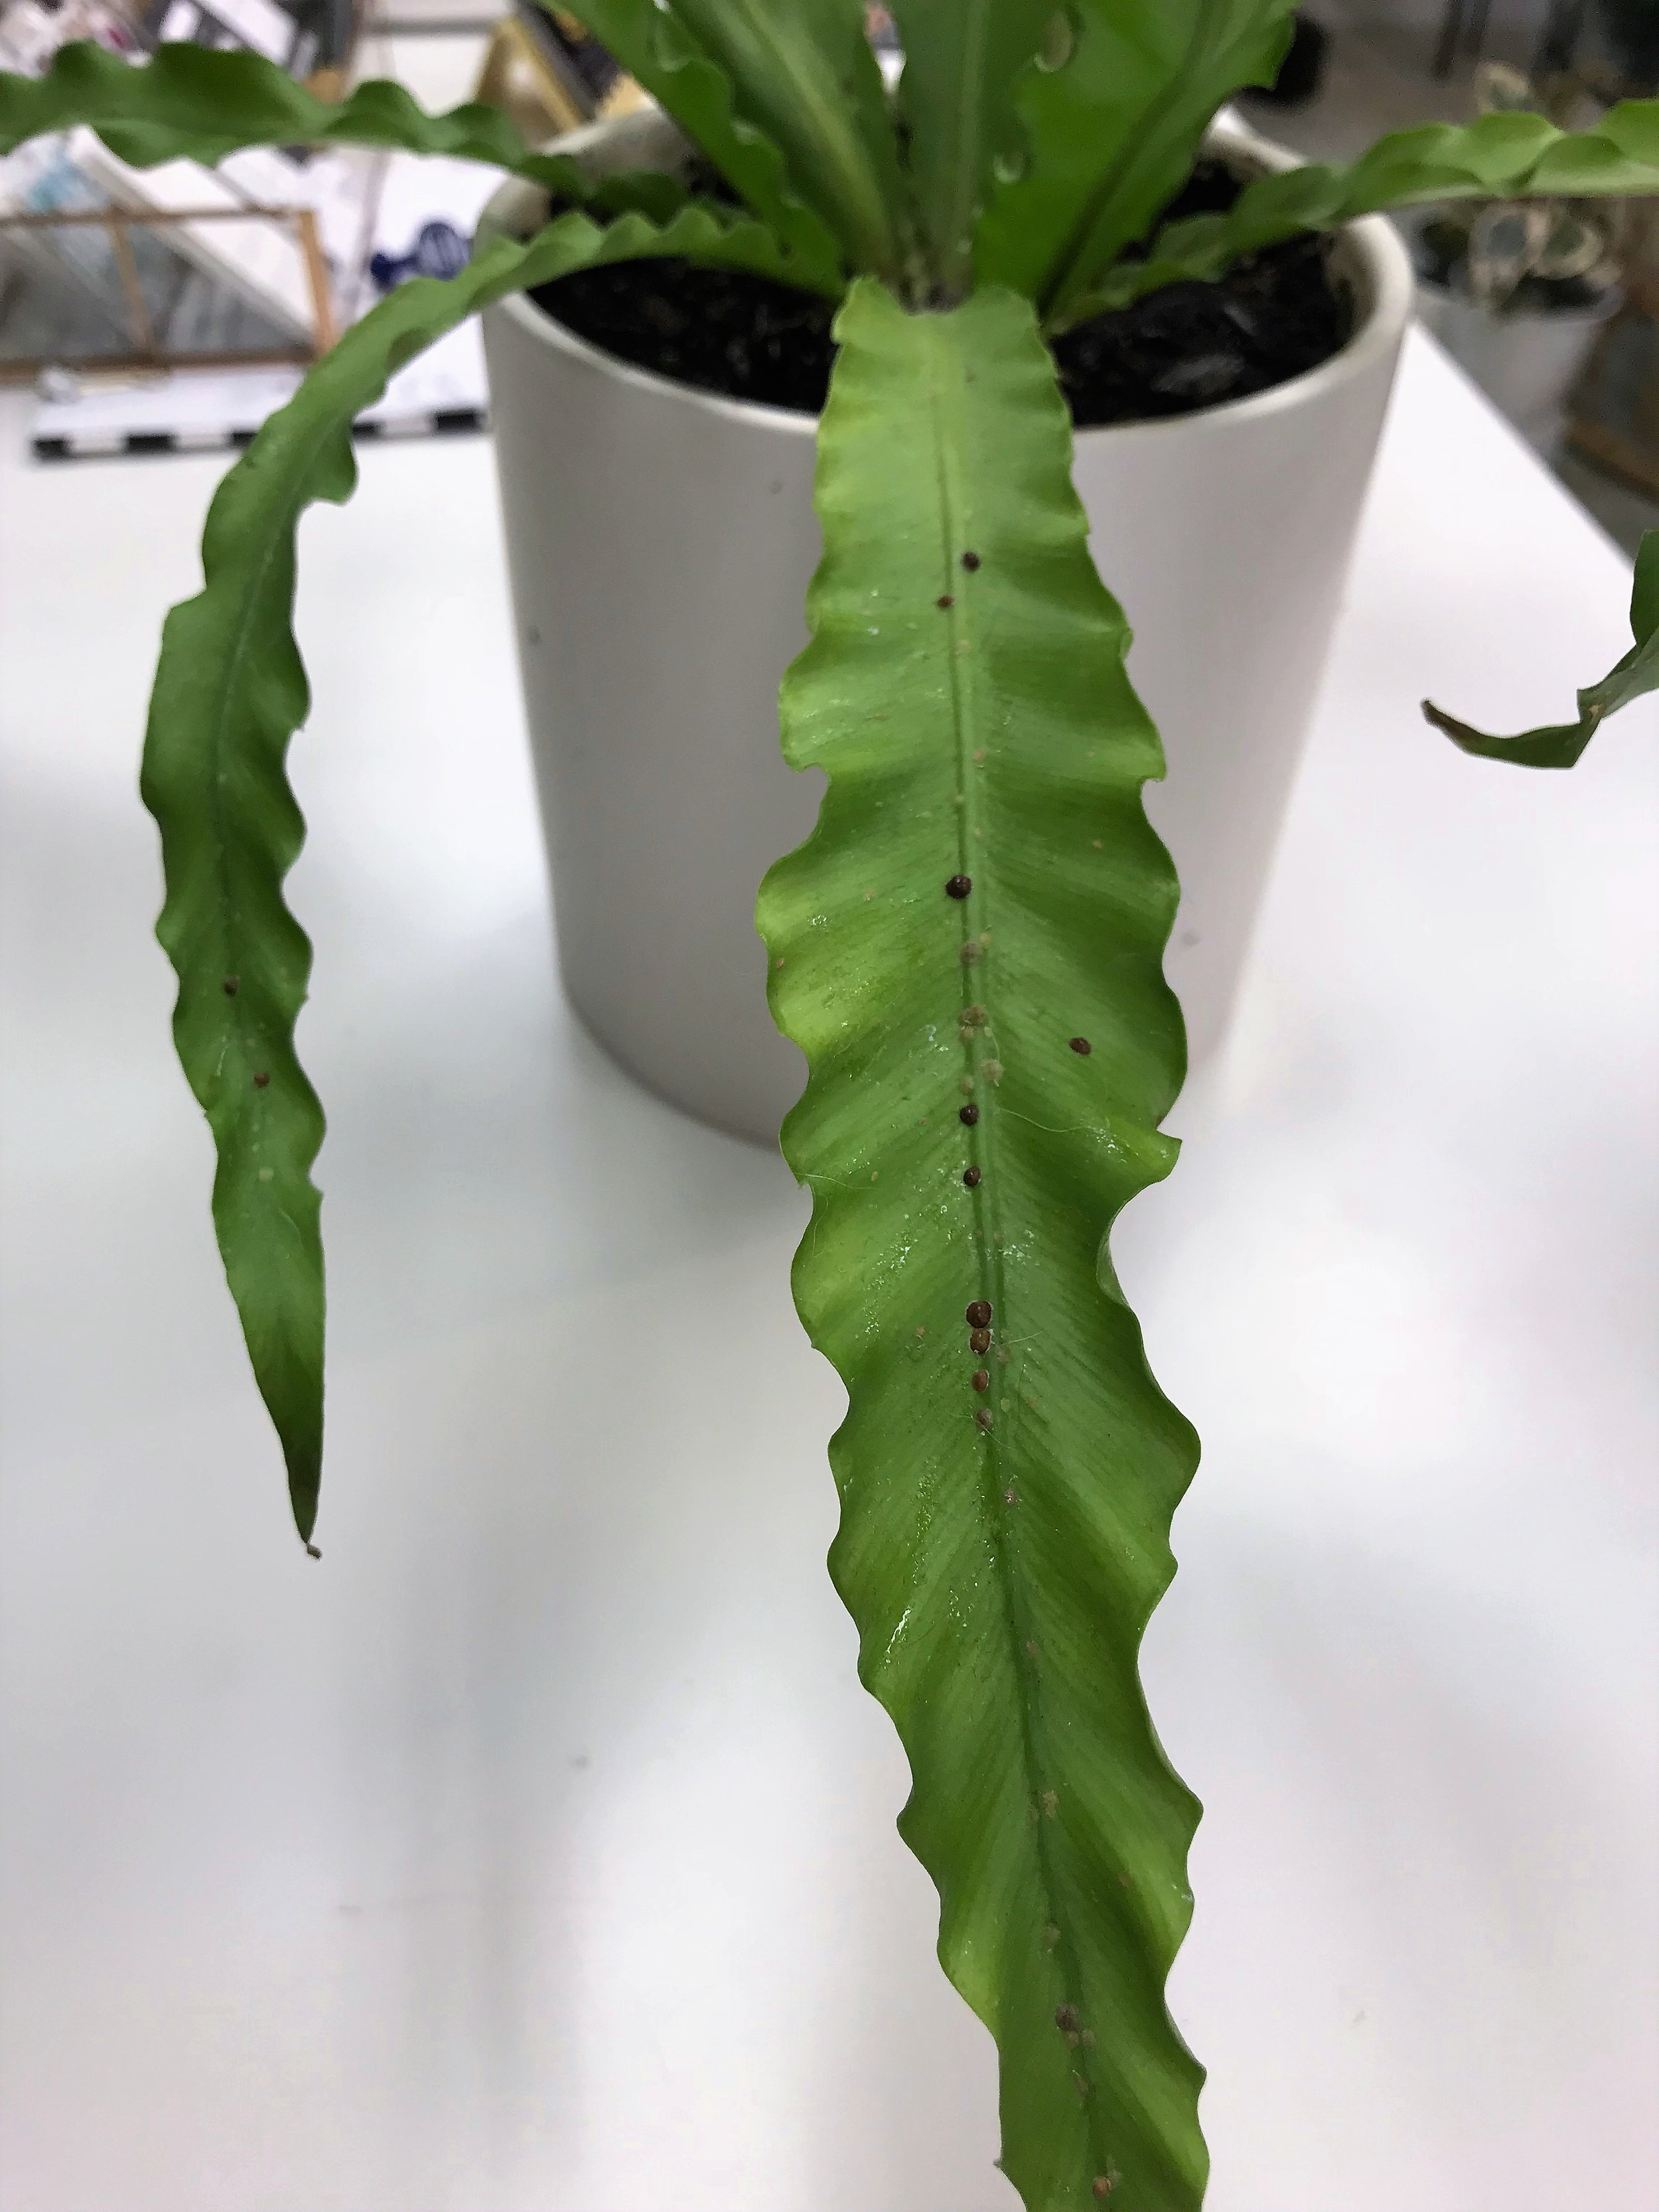 Scale - Immobile brown or black spots are clustered on leaves. Larvae are whitish and can crawl. Adults develop a hard crust and remain immobile while they suck the sap from the leaf. If caught early, spot treatment with a cotton swab dipped in alcohol. Treat with neem oil spray.